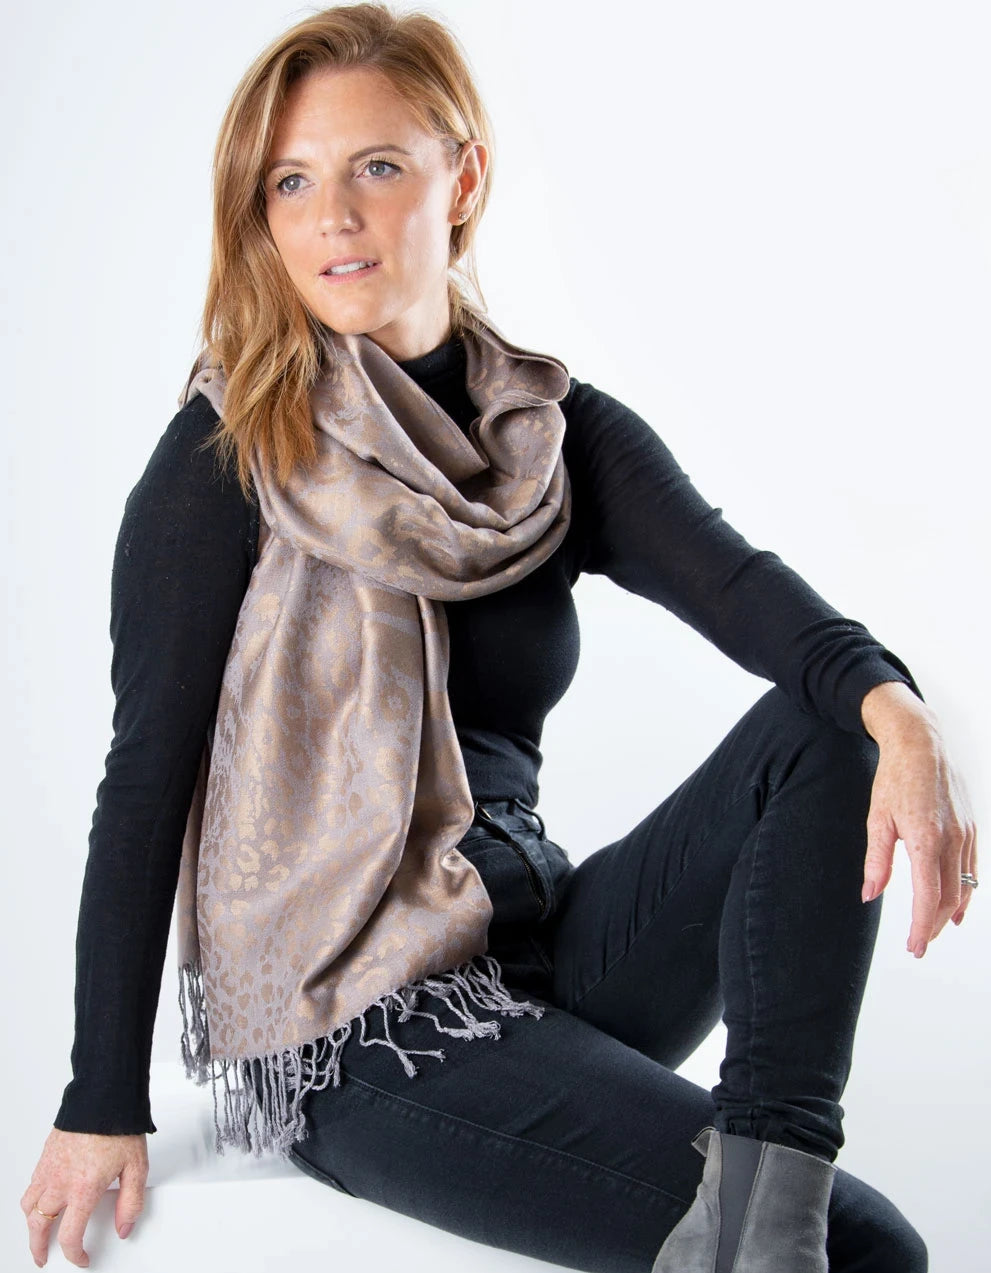 an image showing a silver & gold Reversible Animal print pashmina